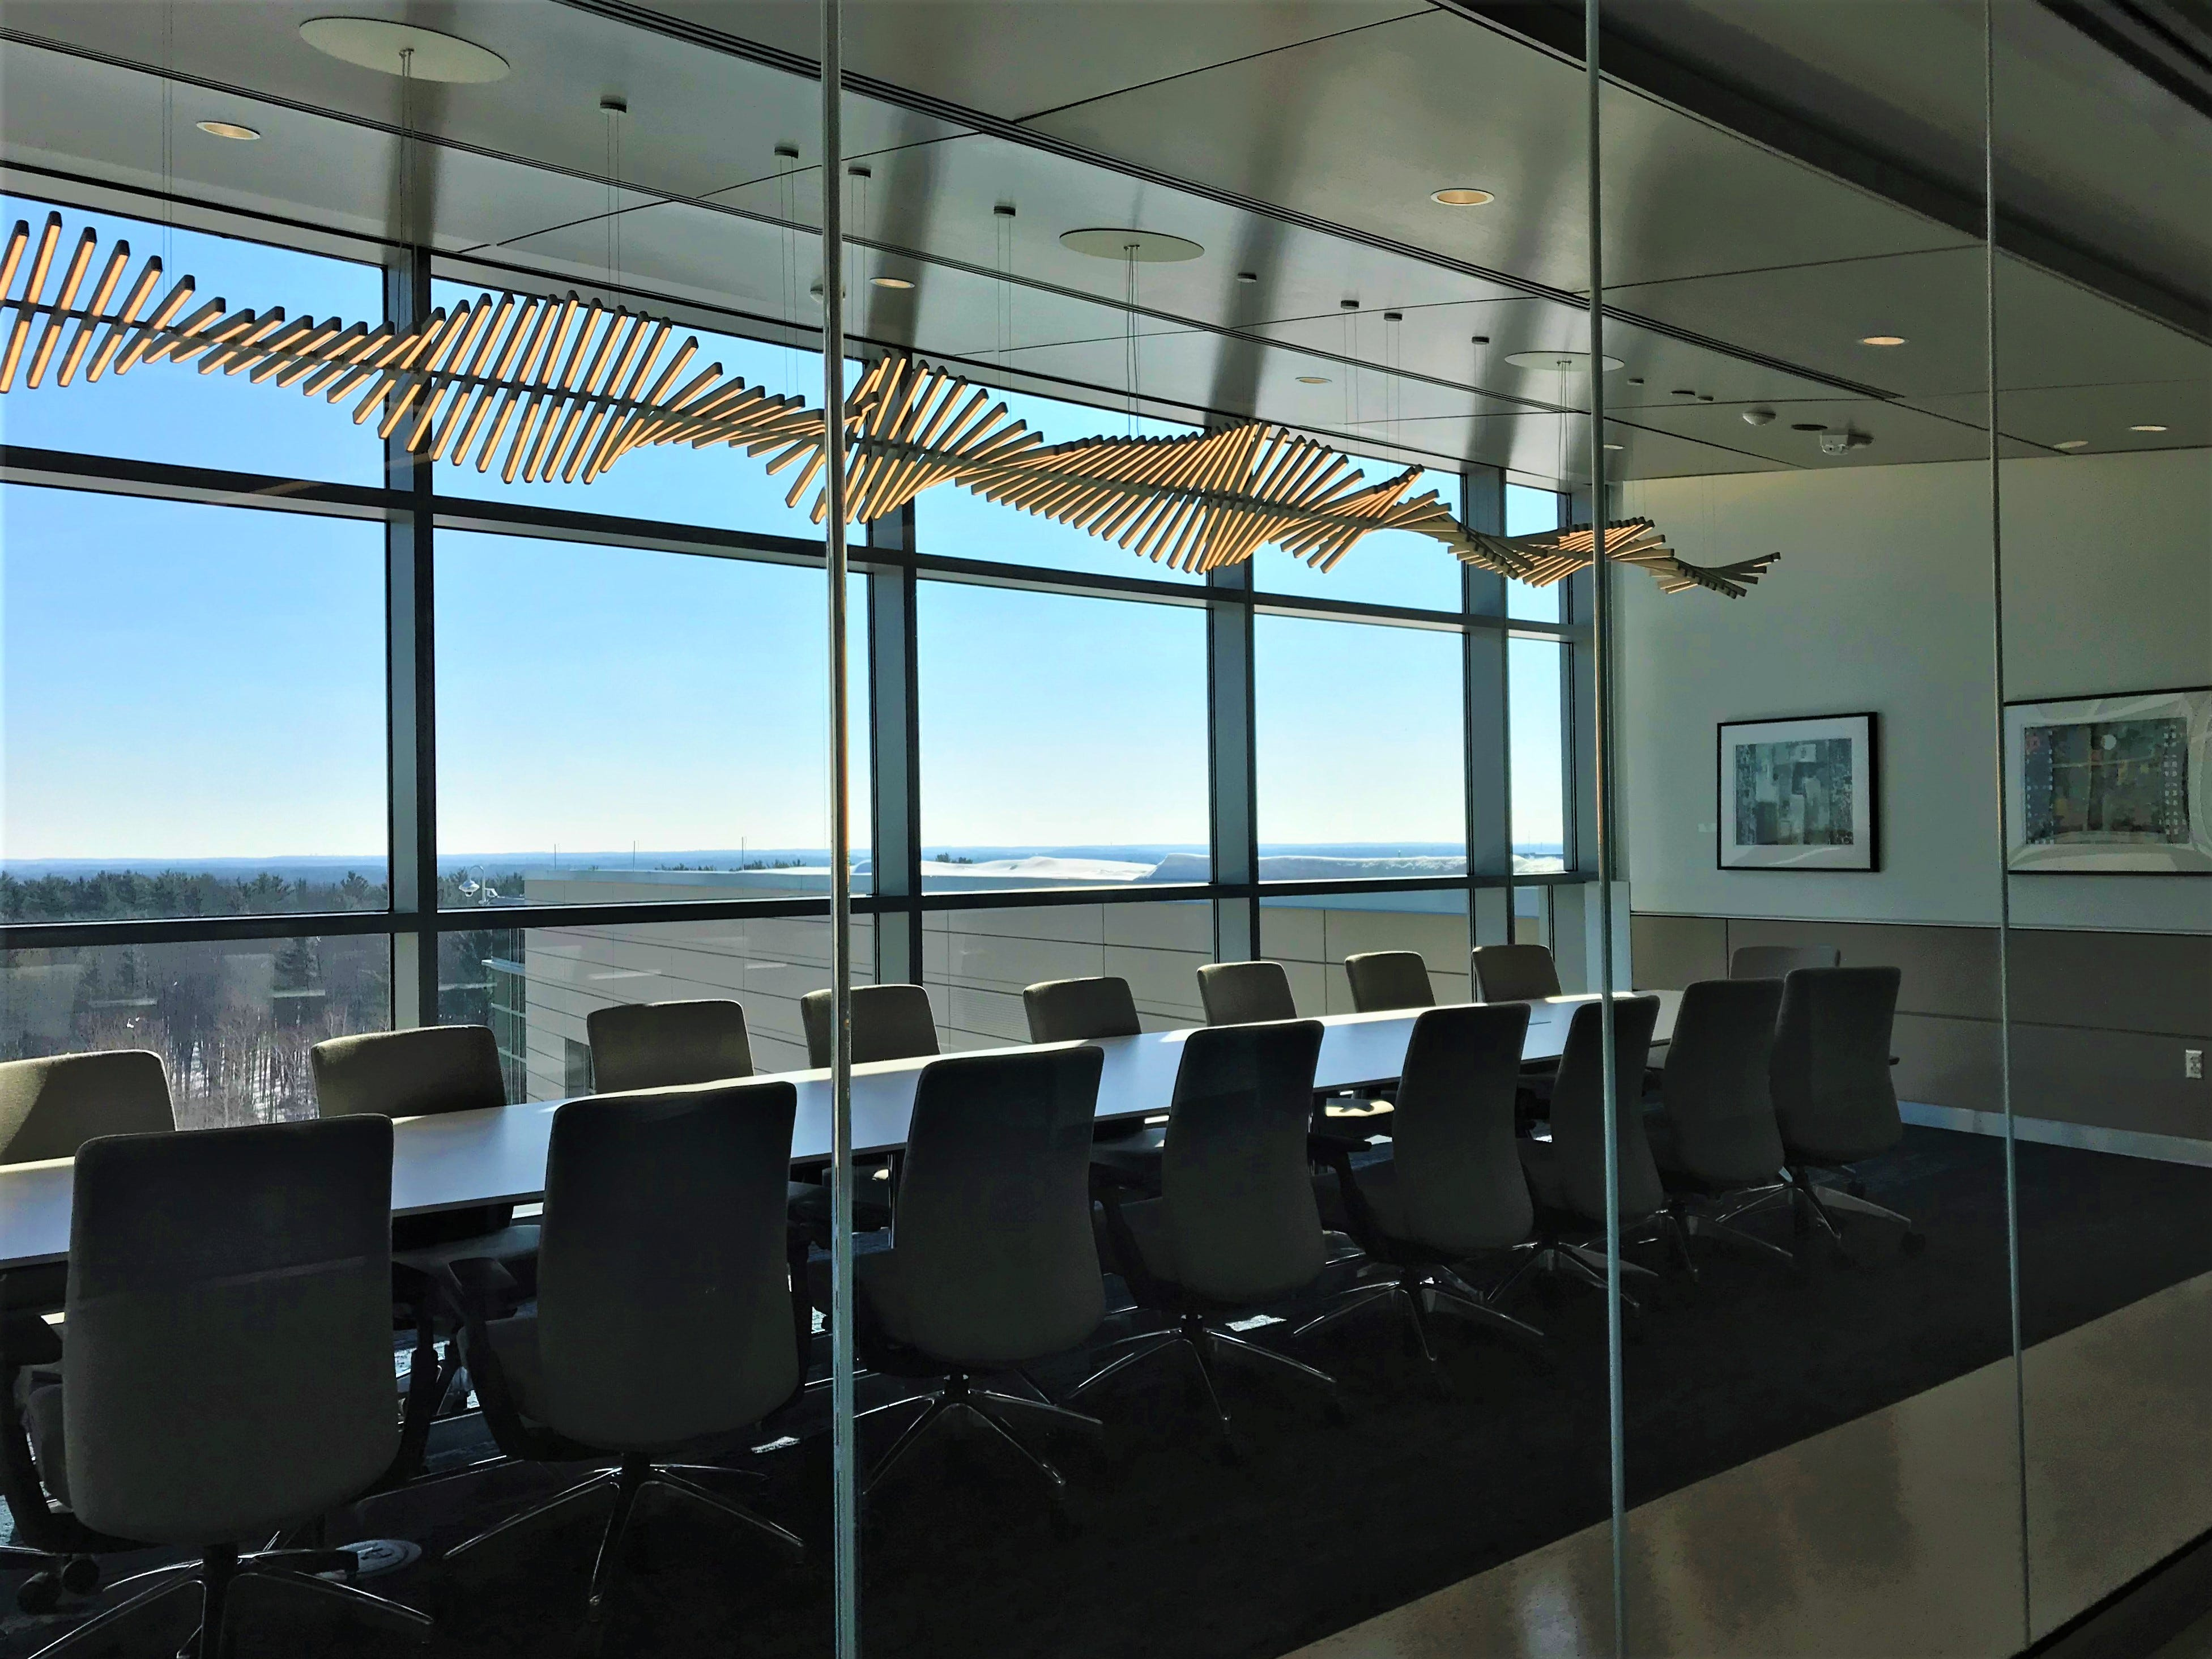 A conference room in the new Sentry Insurance building in Stevens Point.